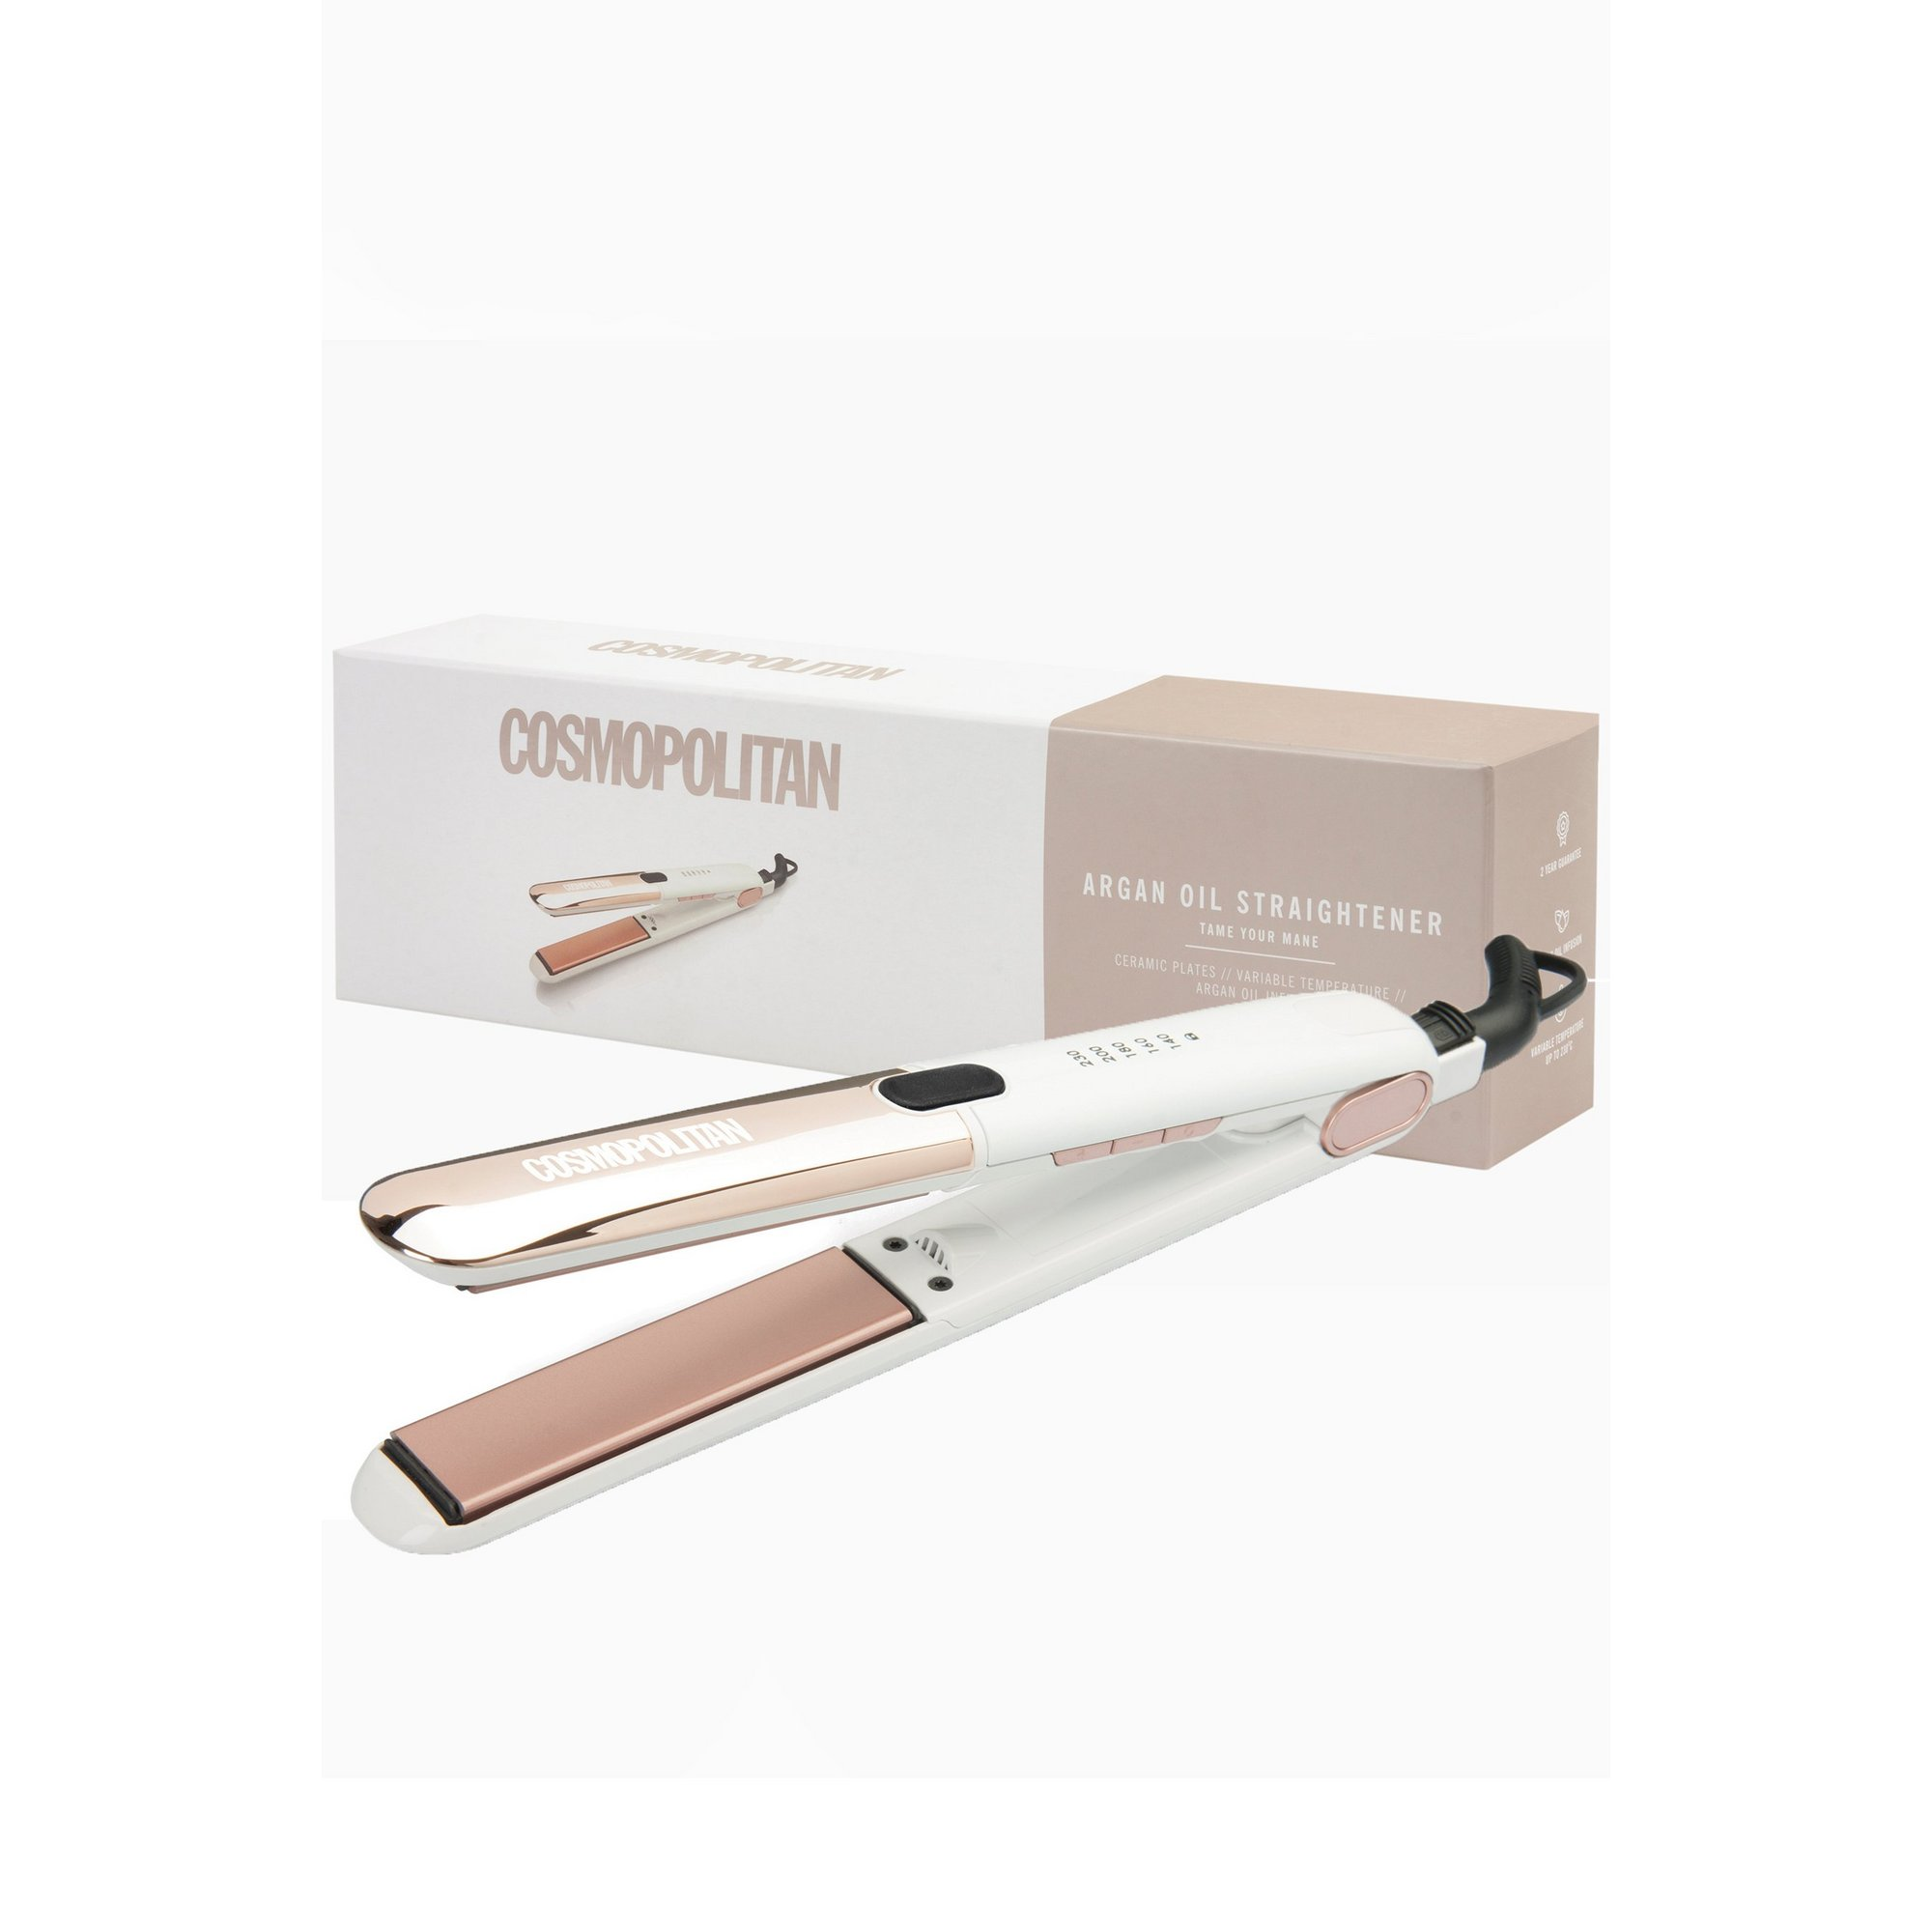 Image of Cosmopolitan Argan Oil Hair Straighteners